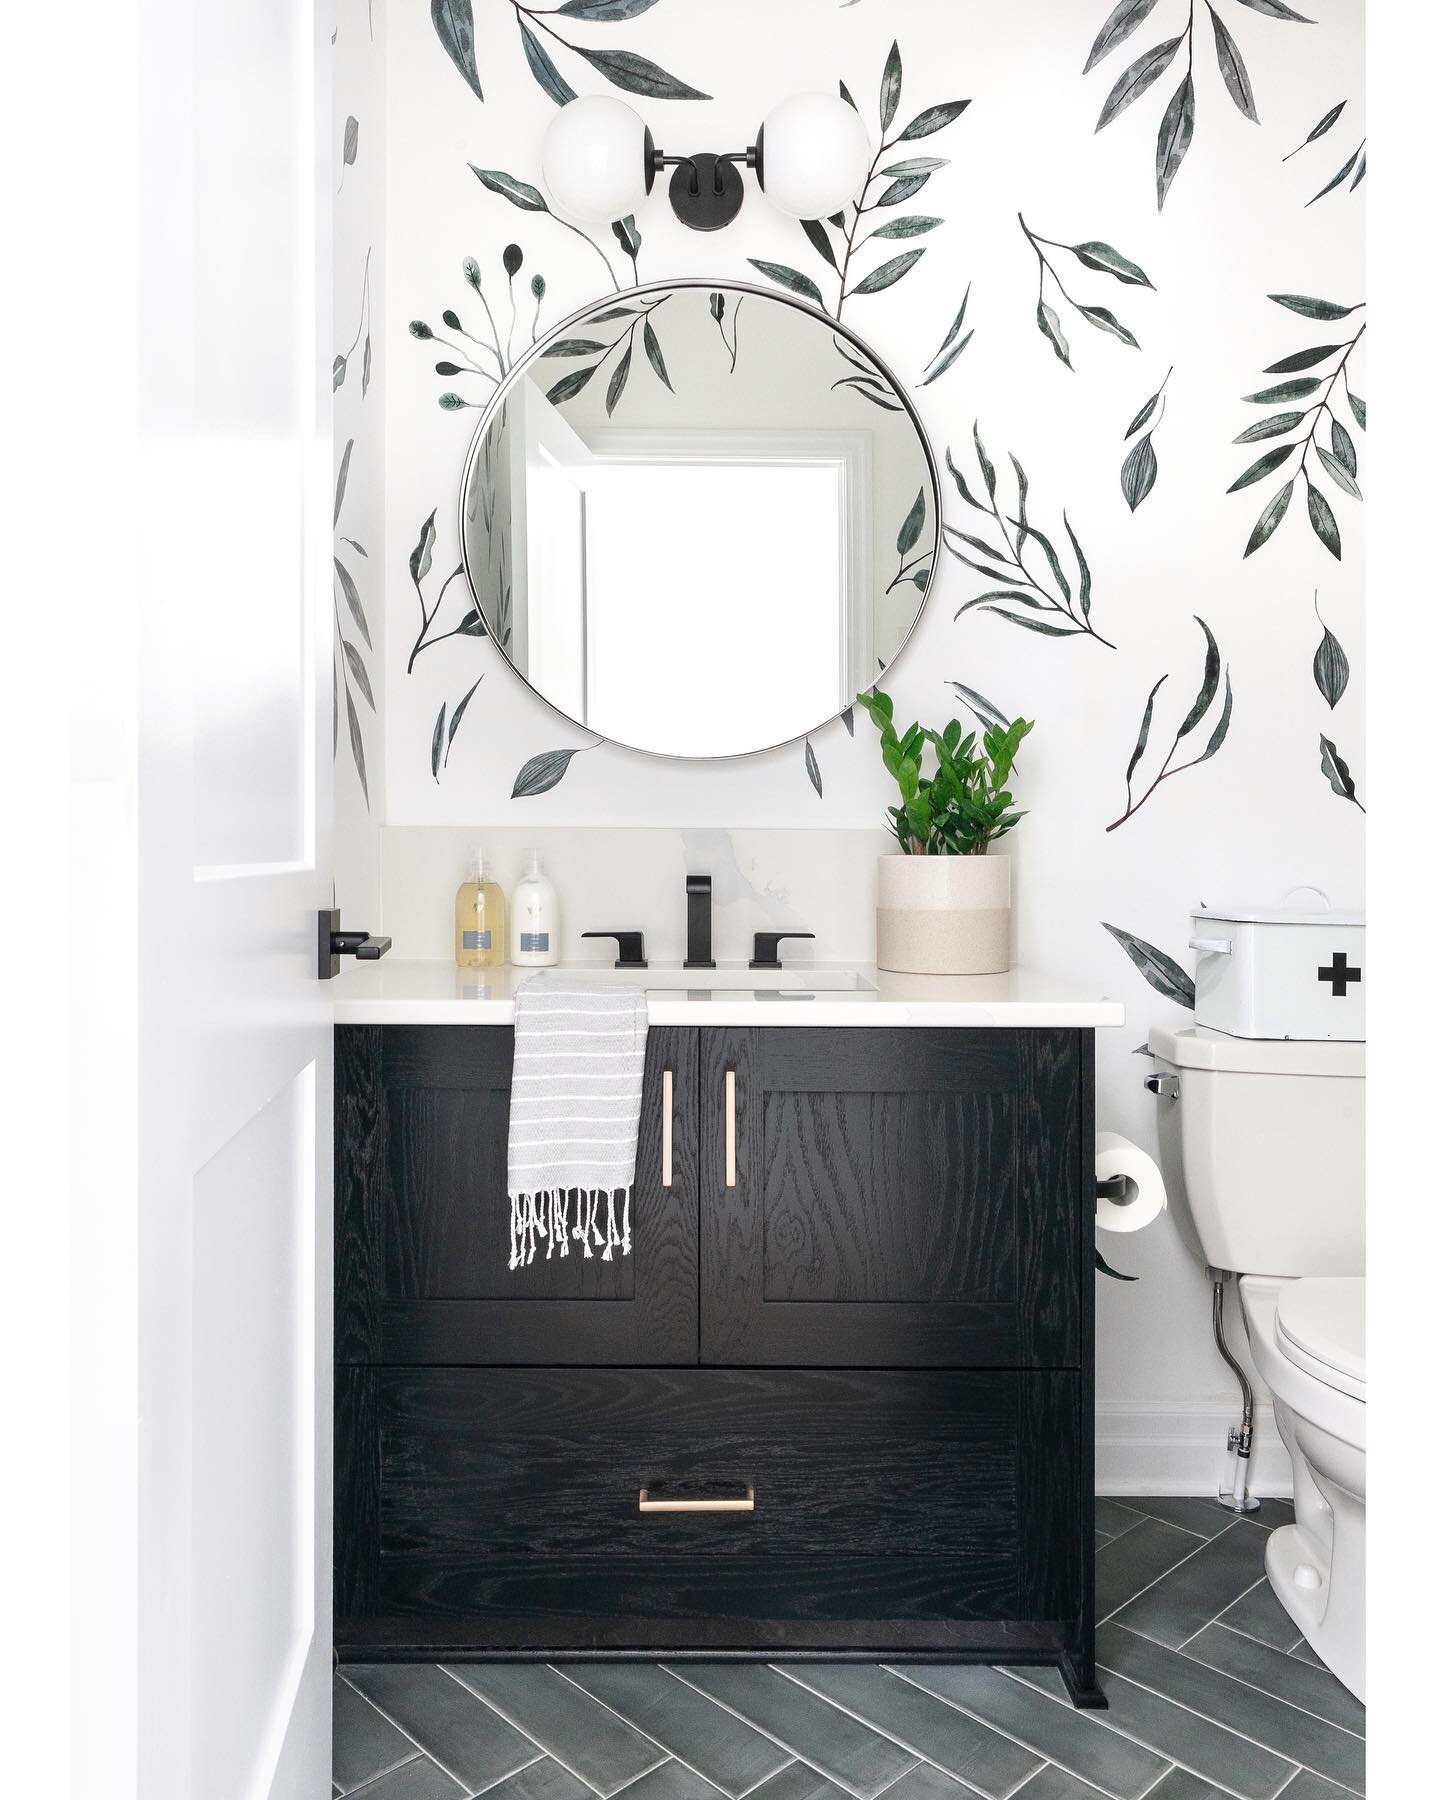 Botanical decals were all that was needed to elevate this simple bathroom.